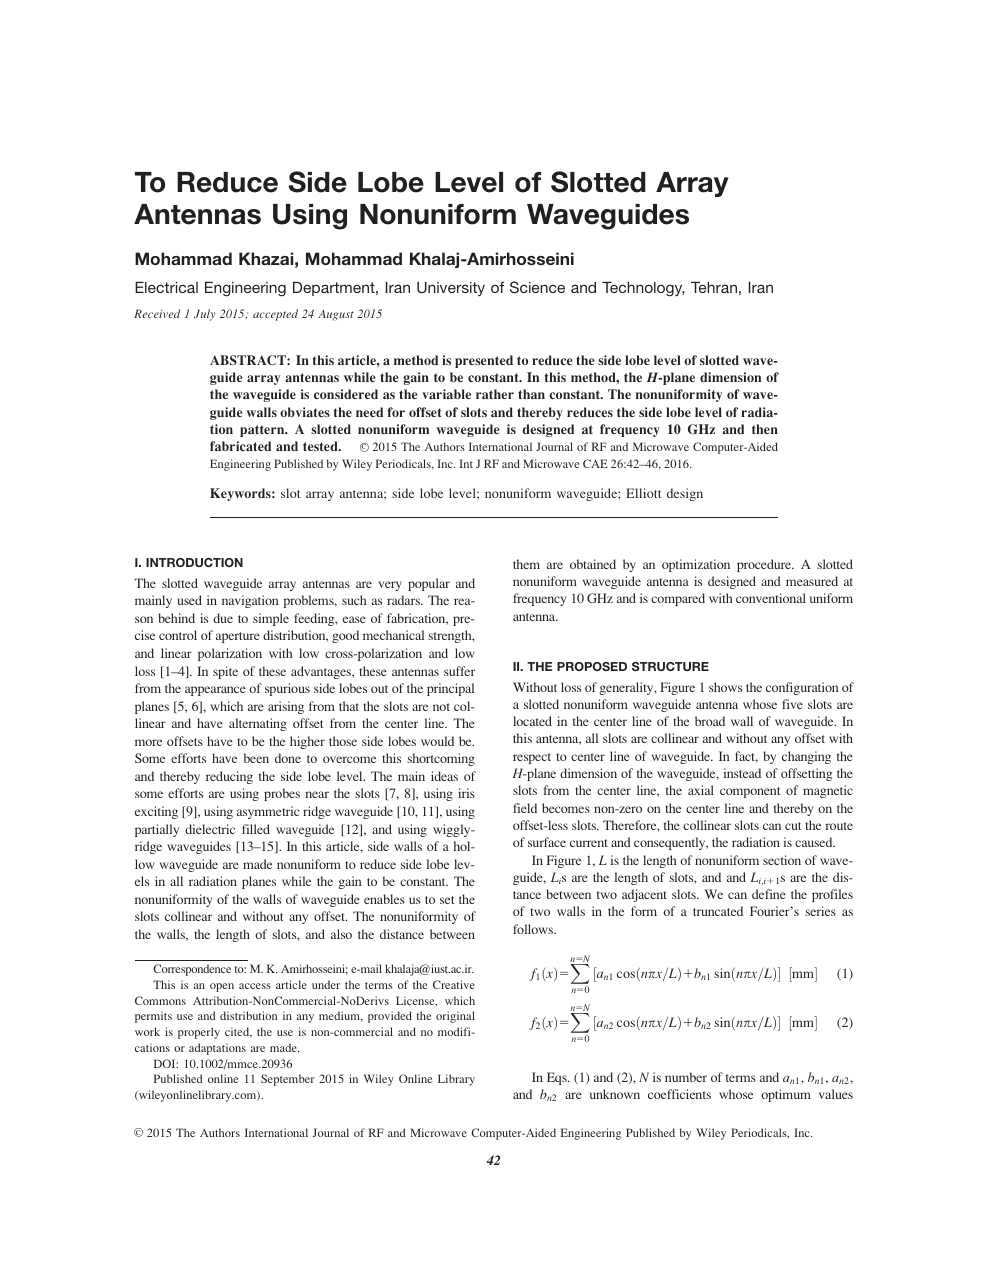 To reduce side lobe level of slotted array antennas using